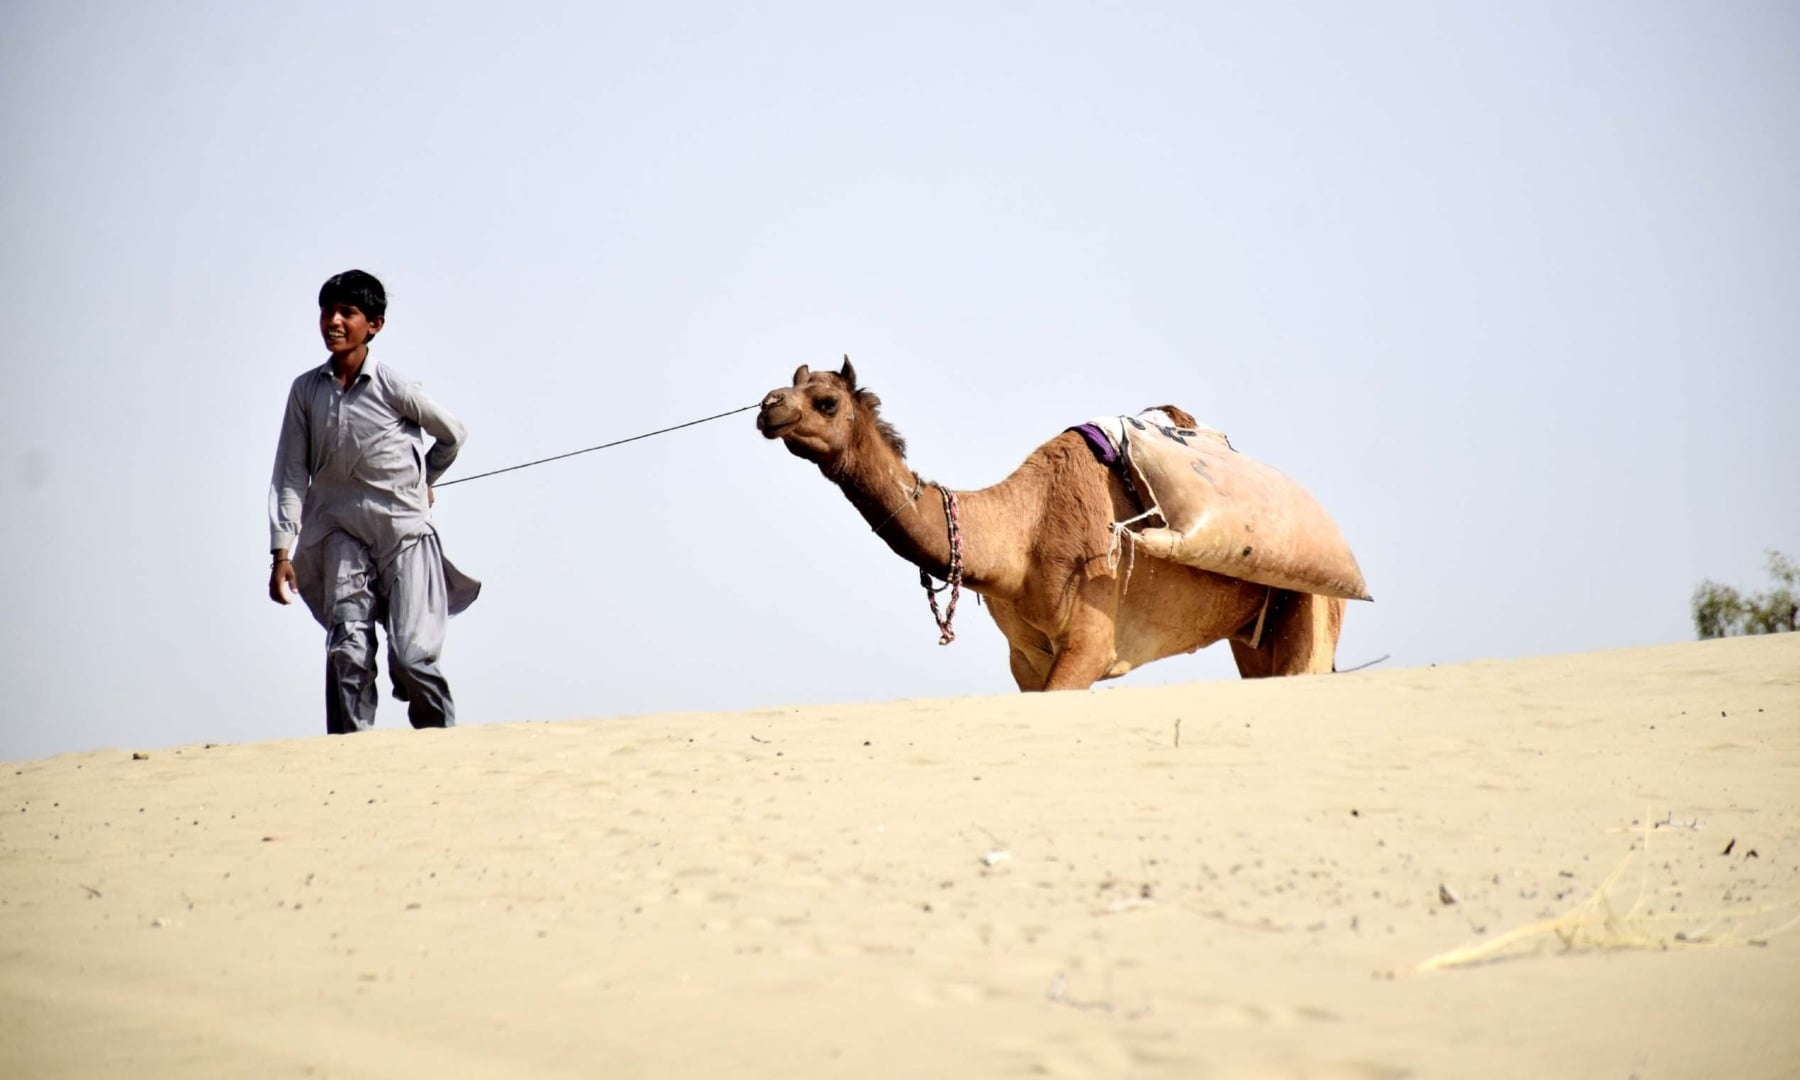 A man walks his camels among the sand dunes in Achhro Thar, Khipro, Sindh. — Photo by Umair Ali